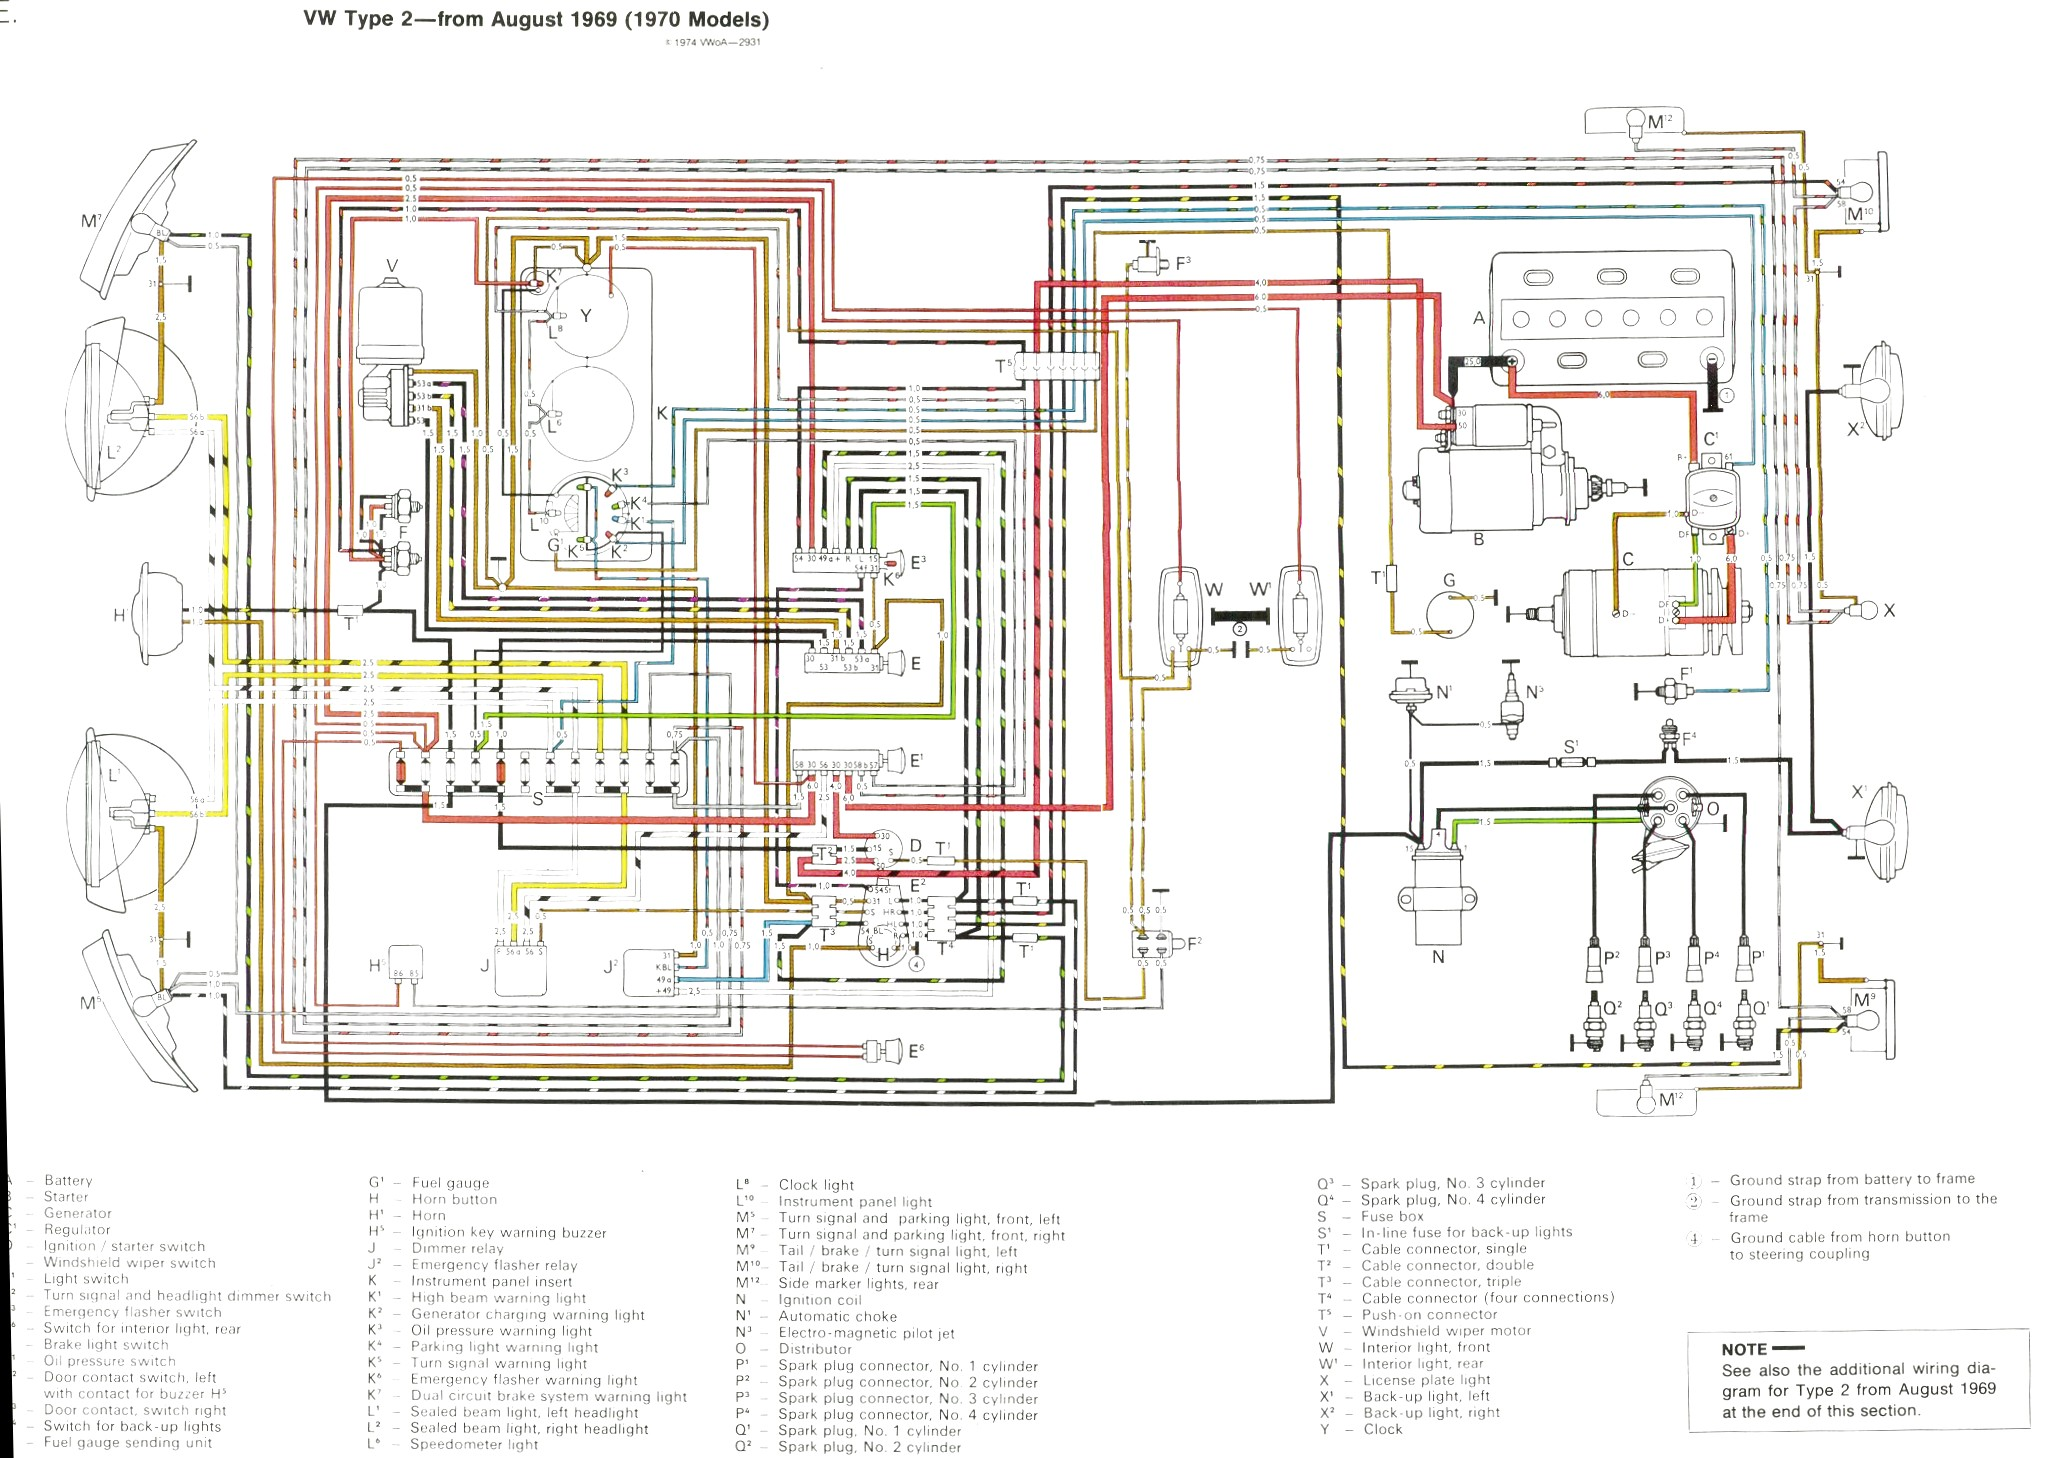 VintageBus.Com - VW Bus (and other) Wiring Diagrams on 1974 vw engine diagram, 74 beetle parts, 74 beetle solenoid, vw beetle diagram, 74 beetle seats, 74 beetle voltage regulator, 74 beetle exhaust, 74 beetle engine, 74 vw bug vacuum diagram, 74 beetle battery, 73 vw bug signal diagram,